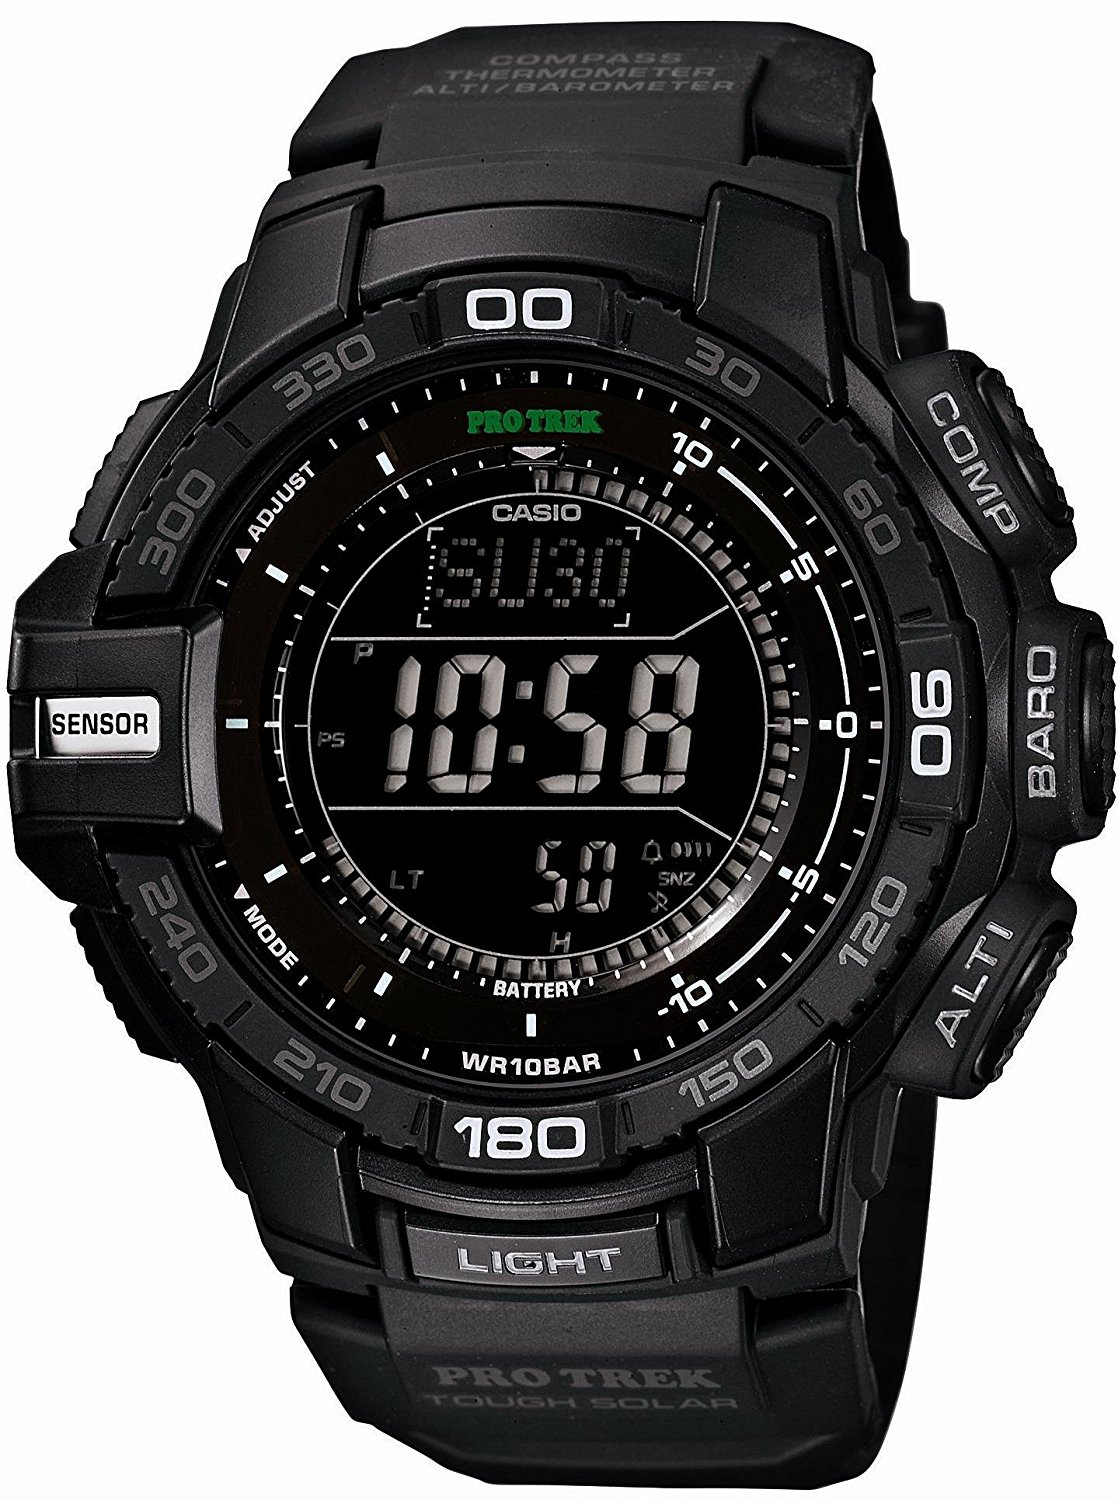 9b1fa816b Cheap Casio Protrek Watch, find Casio Protrek Watch deals on line at ...